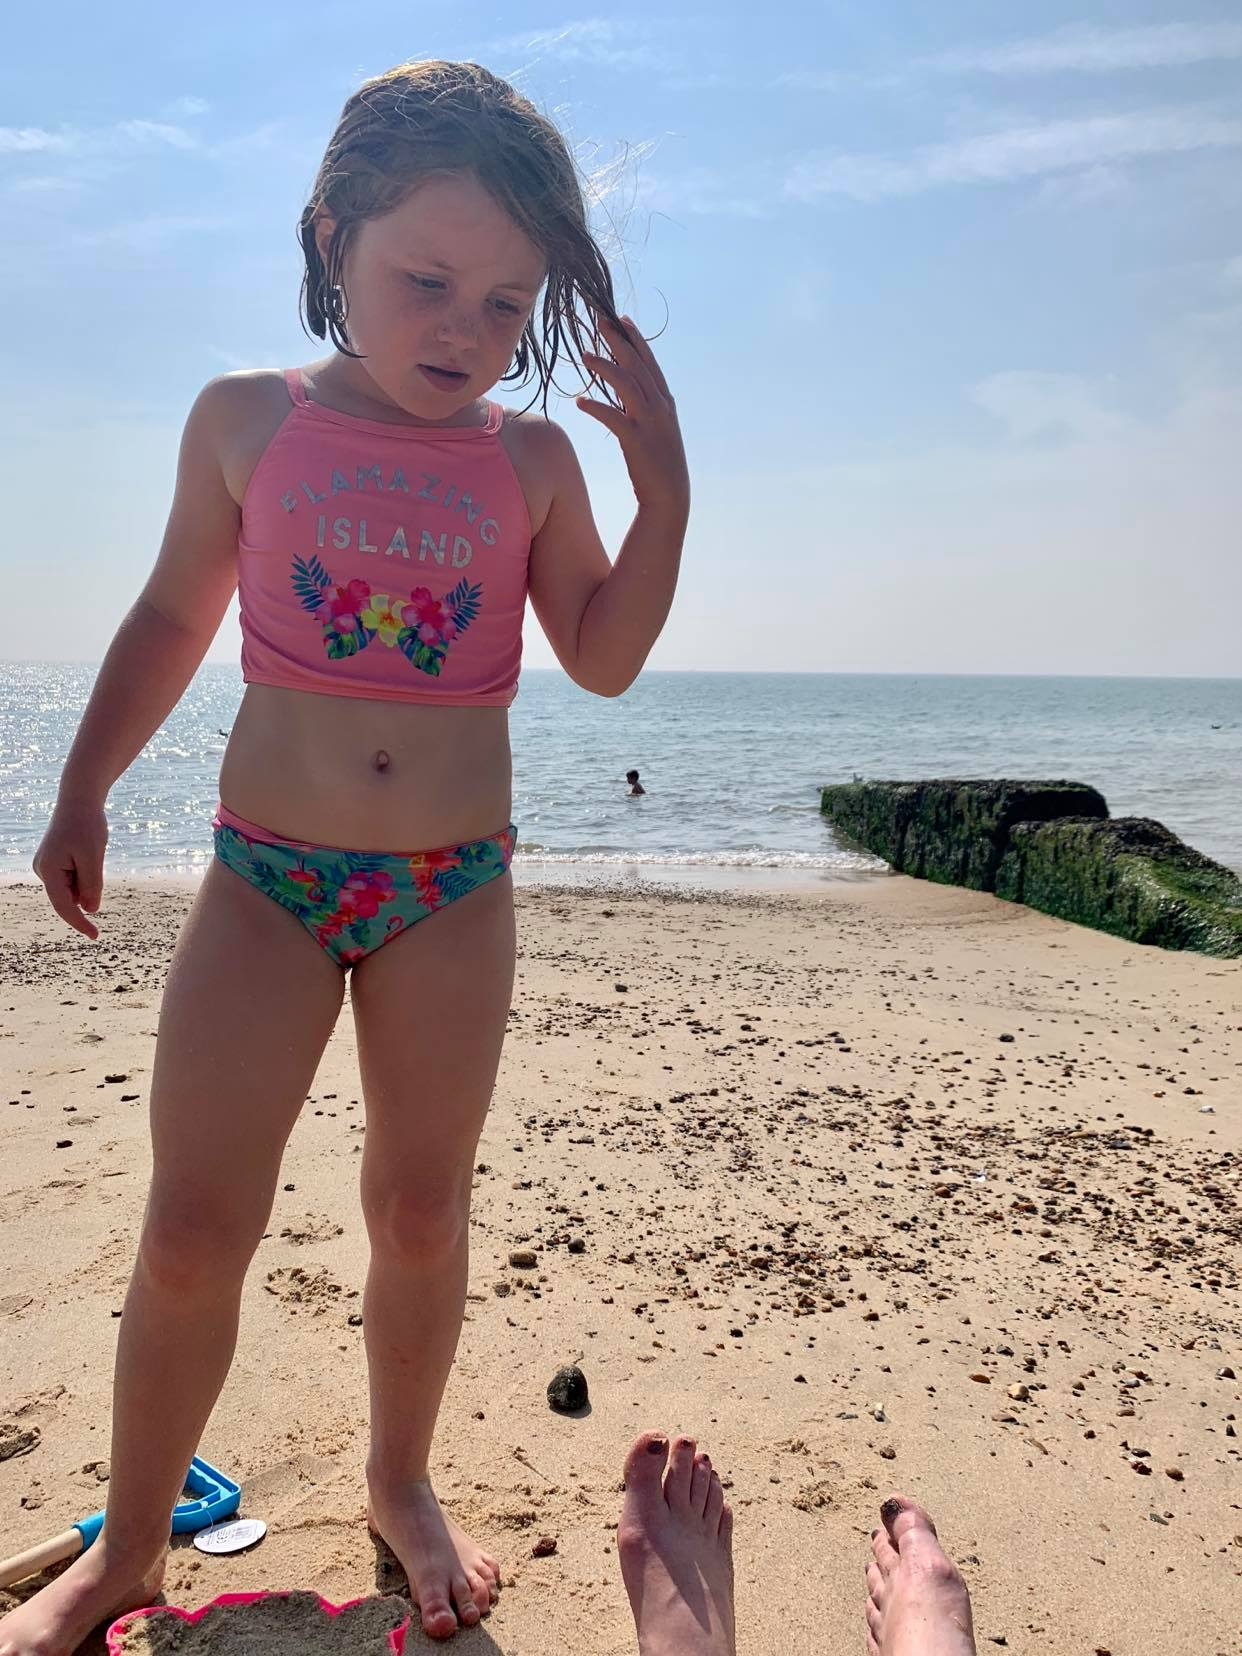 Felixstowe whats it like for a day out, a suffolk mum blog